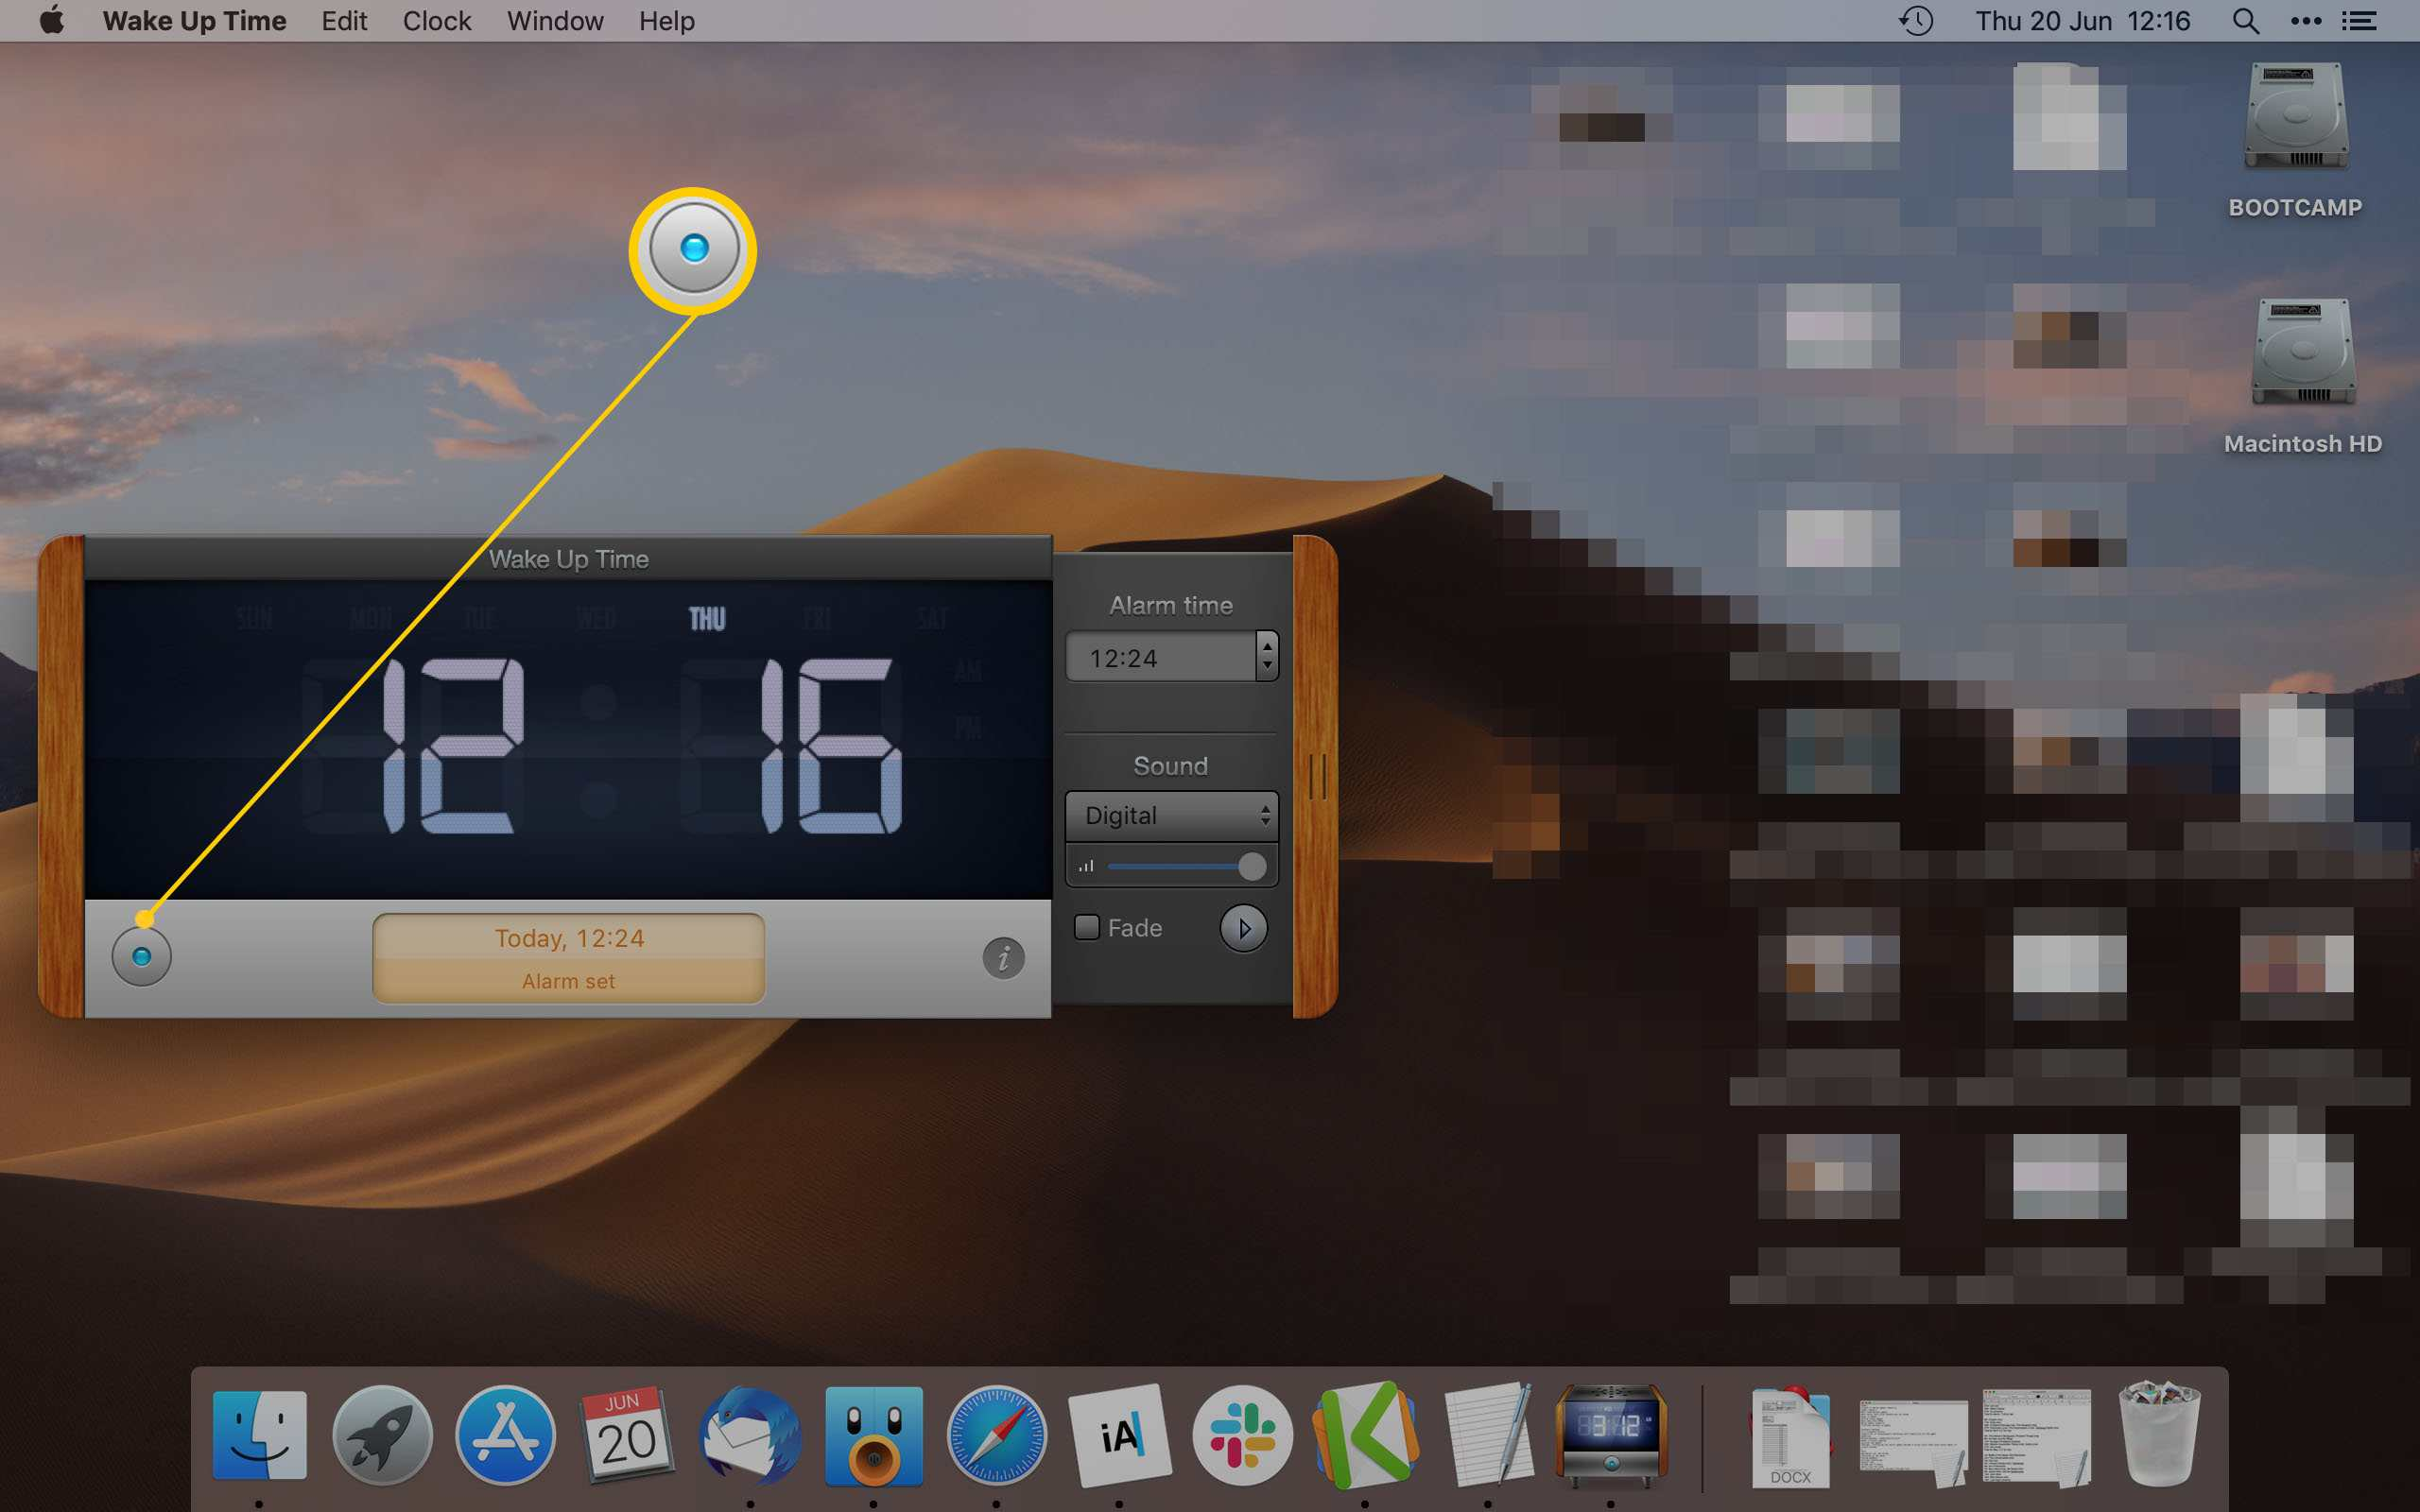 Wake Up Time App for Mac displaying what button to press to set an alarm